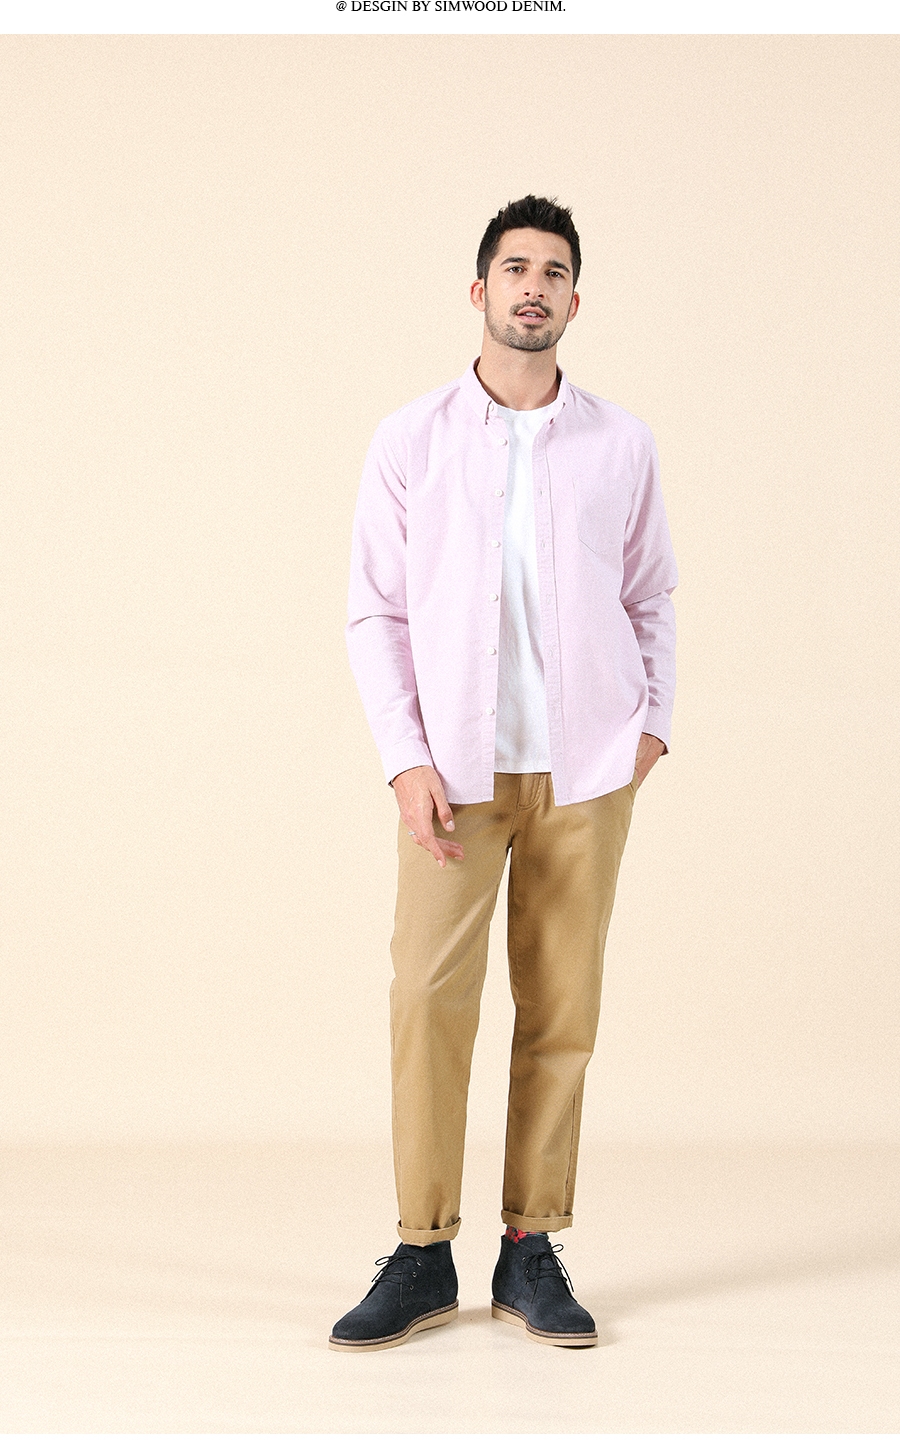 H1d3791acb54746f6a36c6f95c1be7be0U - SIMWOOD 21s/2 oxford shirts men classical casual shirt single chest pockets 100% cotton spring new brand clothing SJ110377